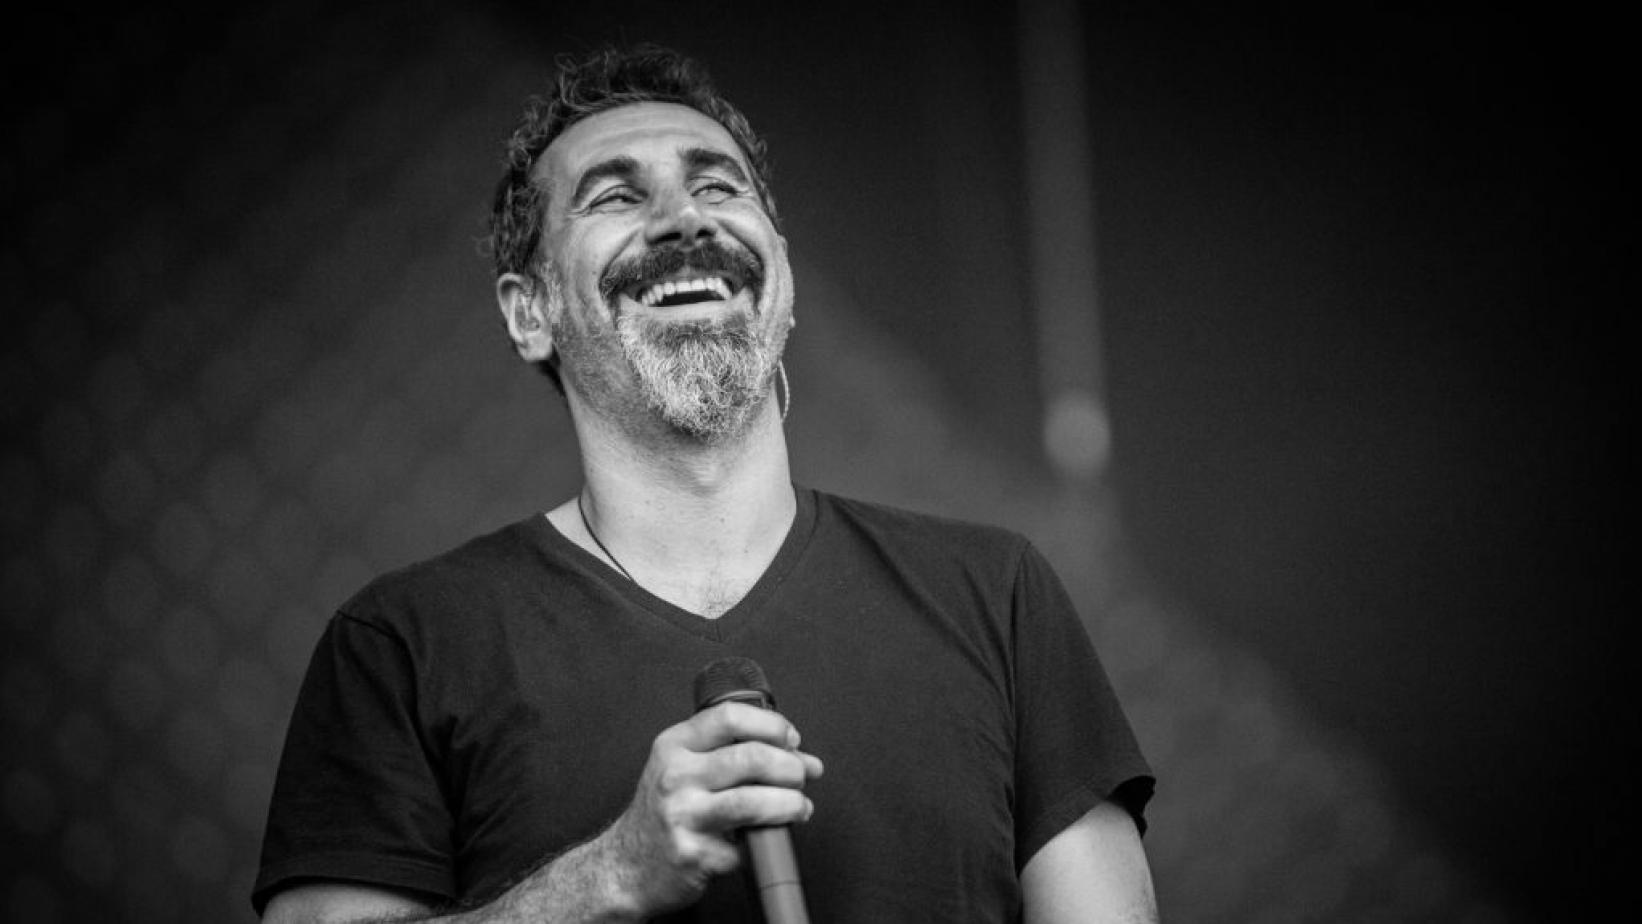 System Of A Down's Serj Tankian